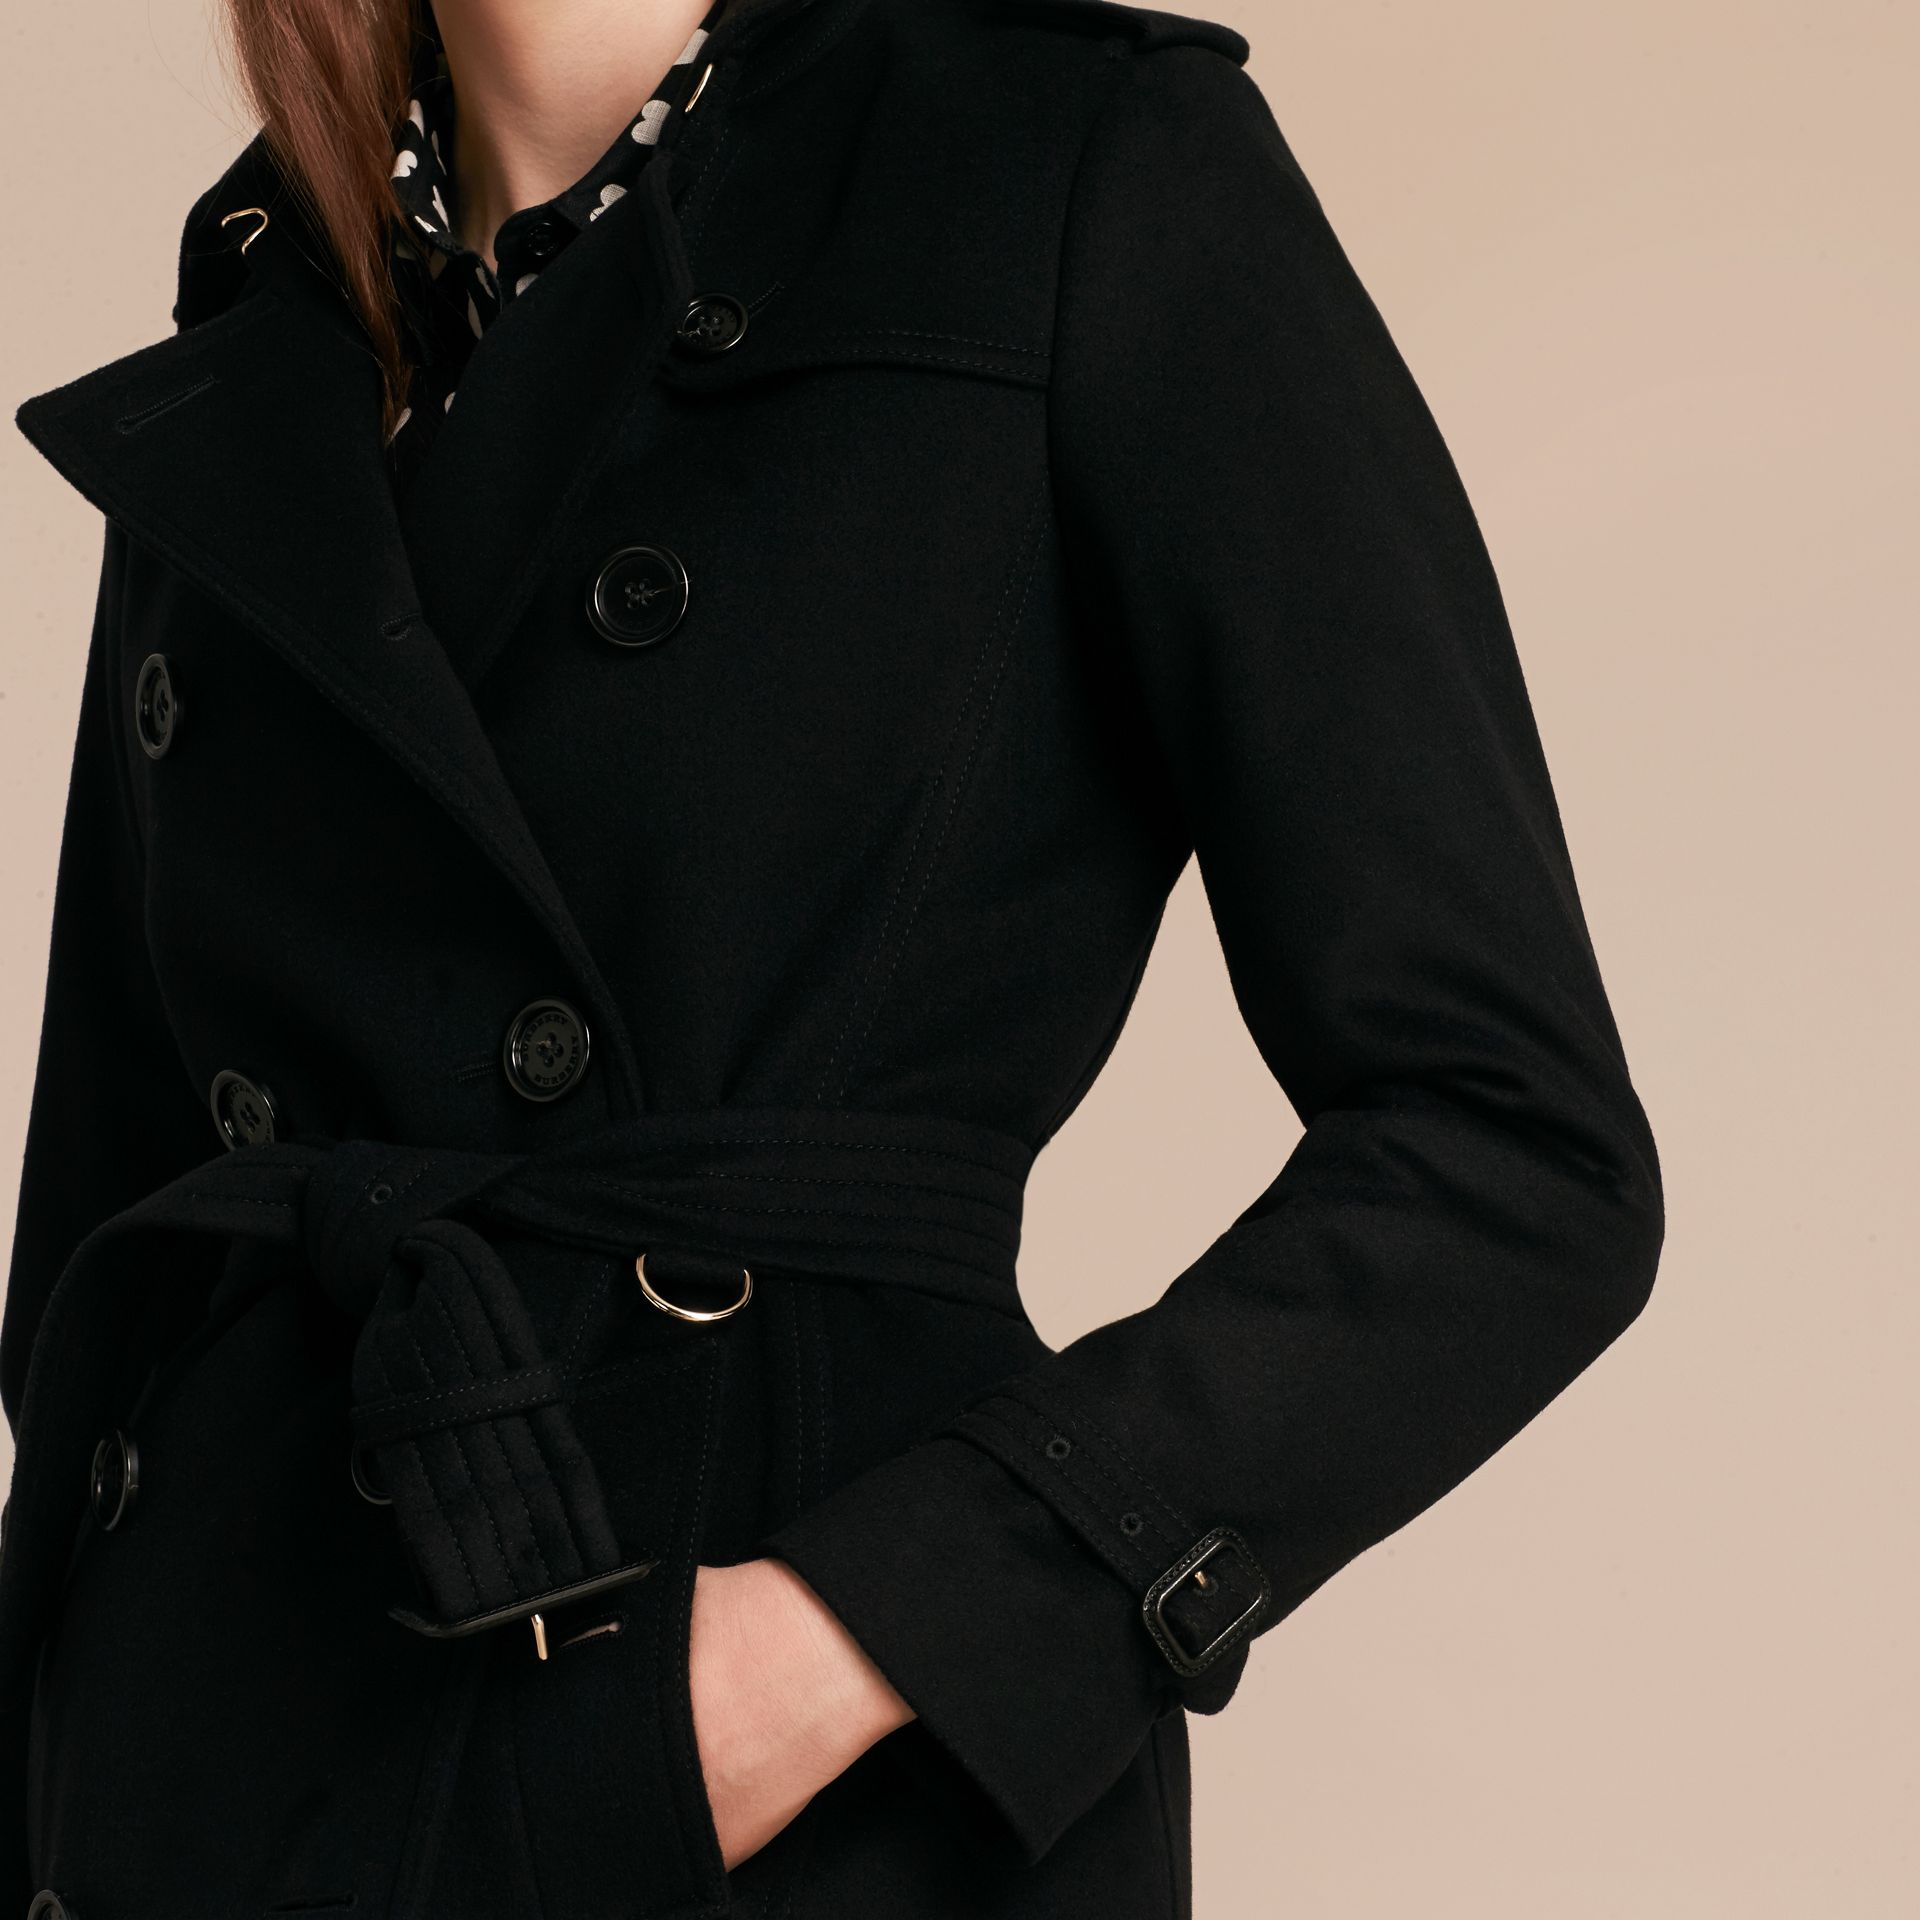 Wool Cashmere Trench Coat Black - gallery image 6